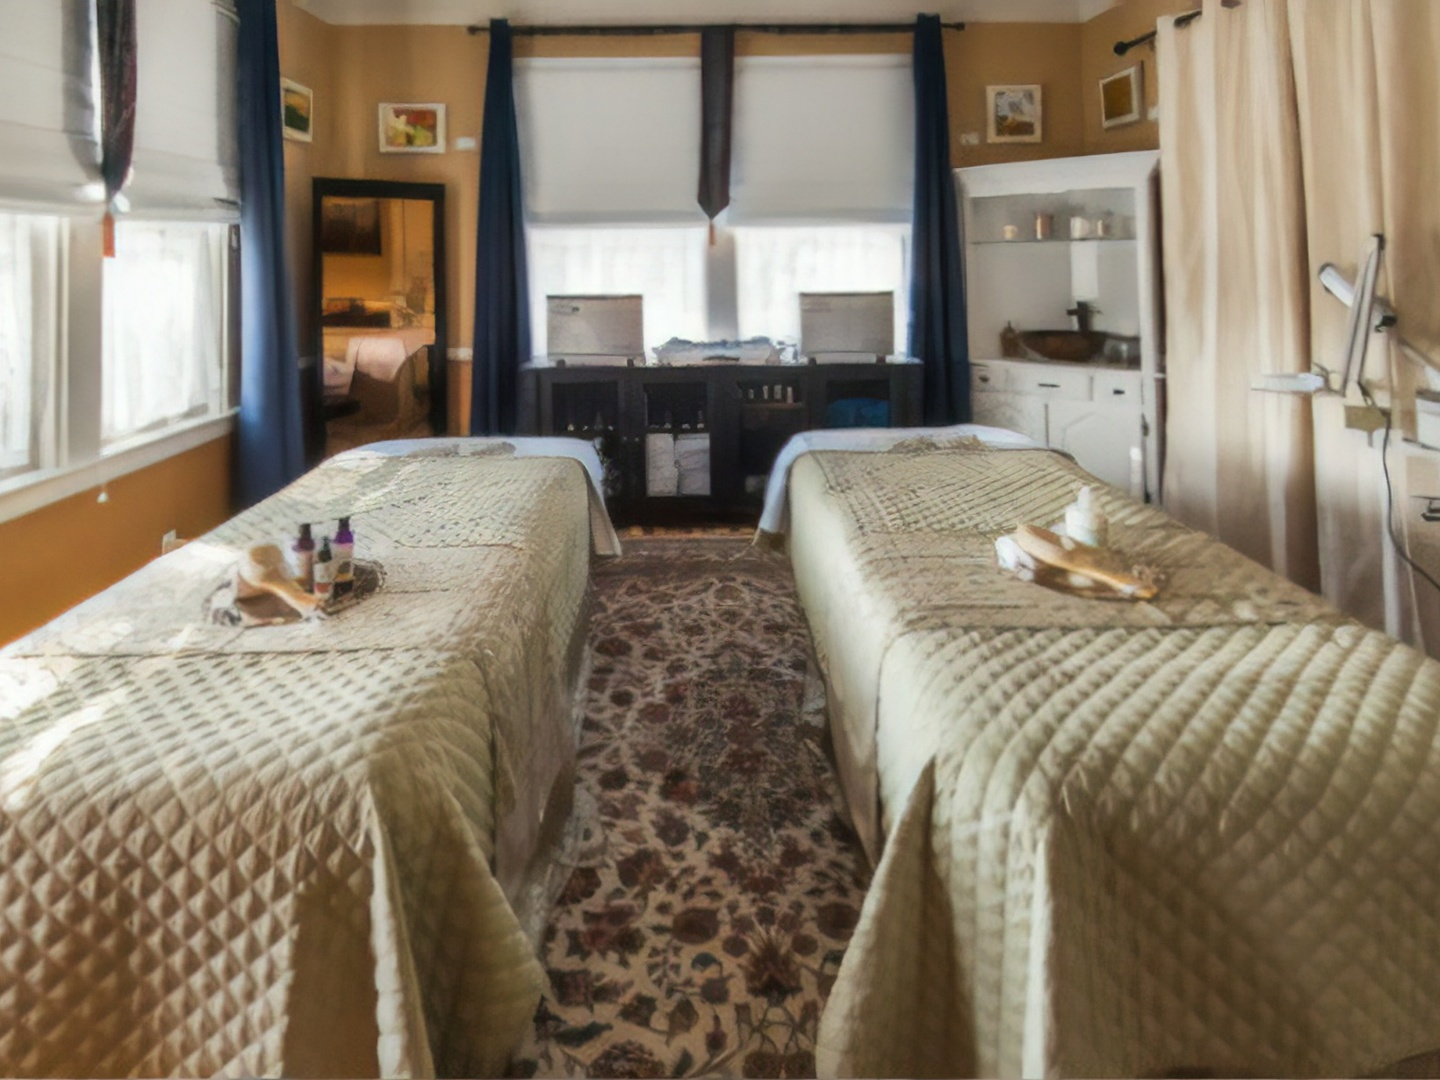 A bedroom with a bed in a hotel room at Abbington Green Bed & Breakfast Inn.